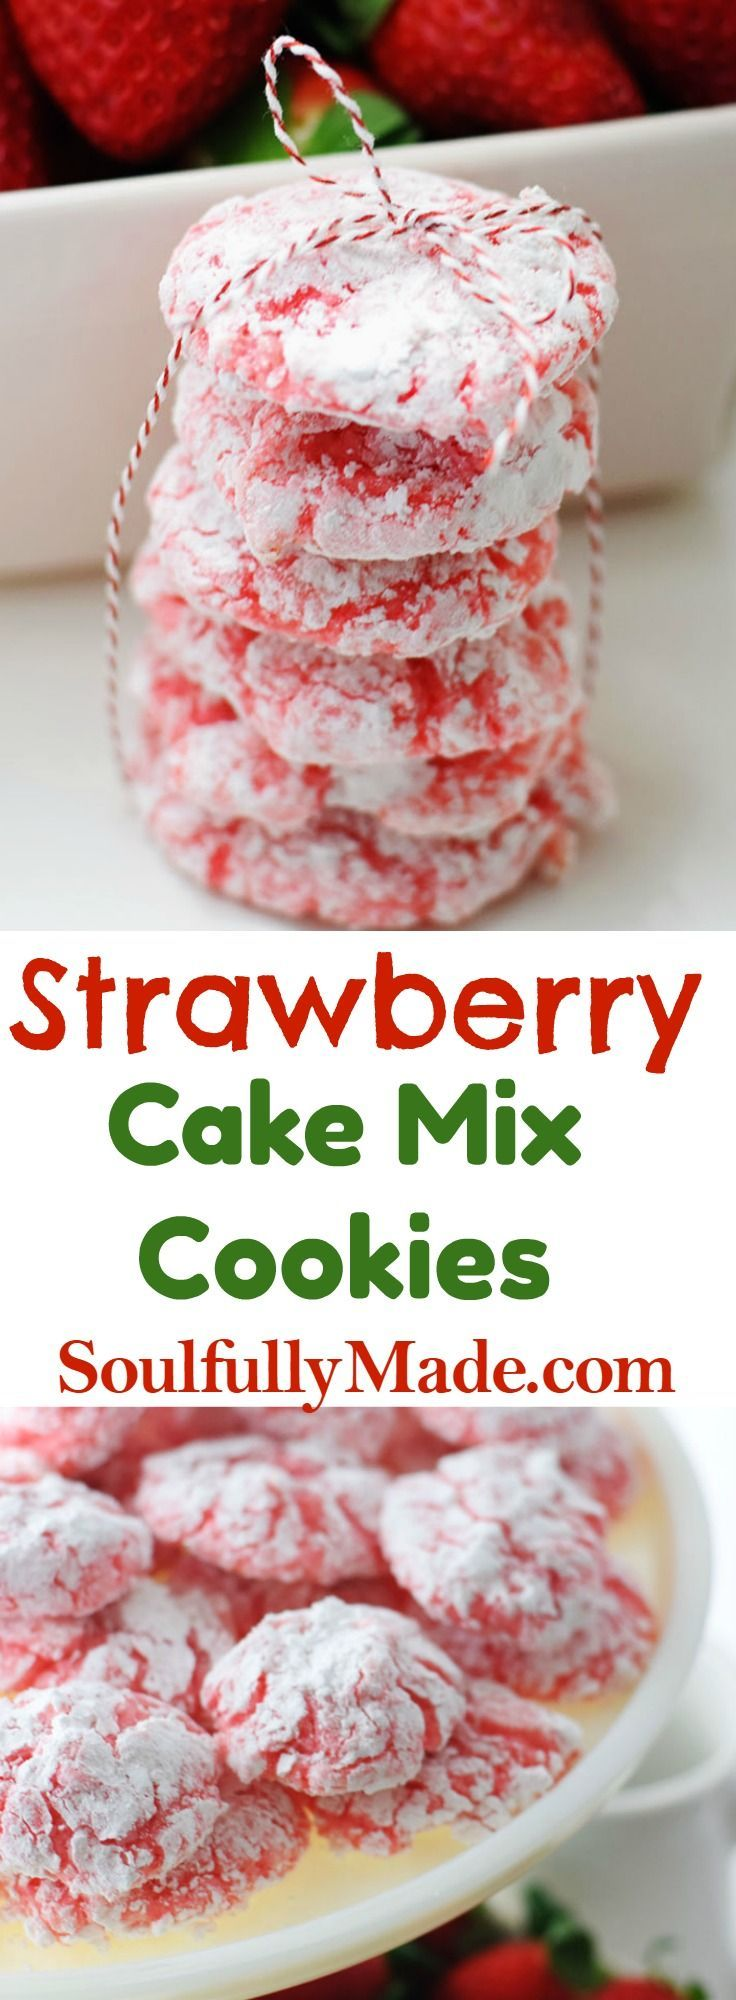 Strawberry Cake Mix Cookies are soft, chewy pillows bursting with strawberry flavor. Made with 4 simple ingredients, these cookies are simply delicious! #soulfullymade